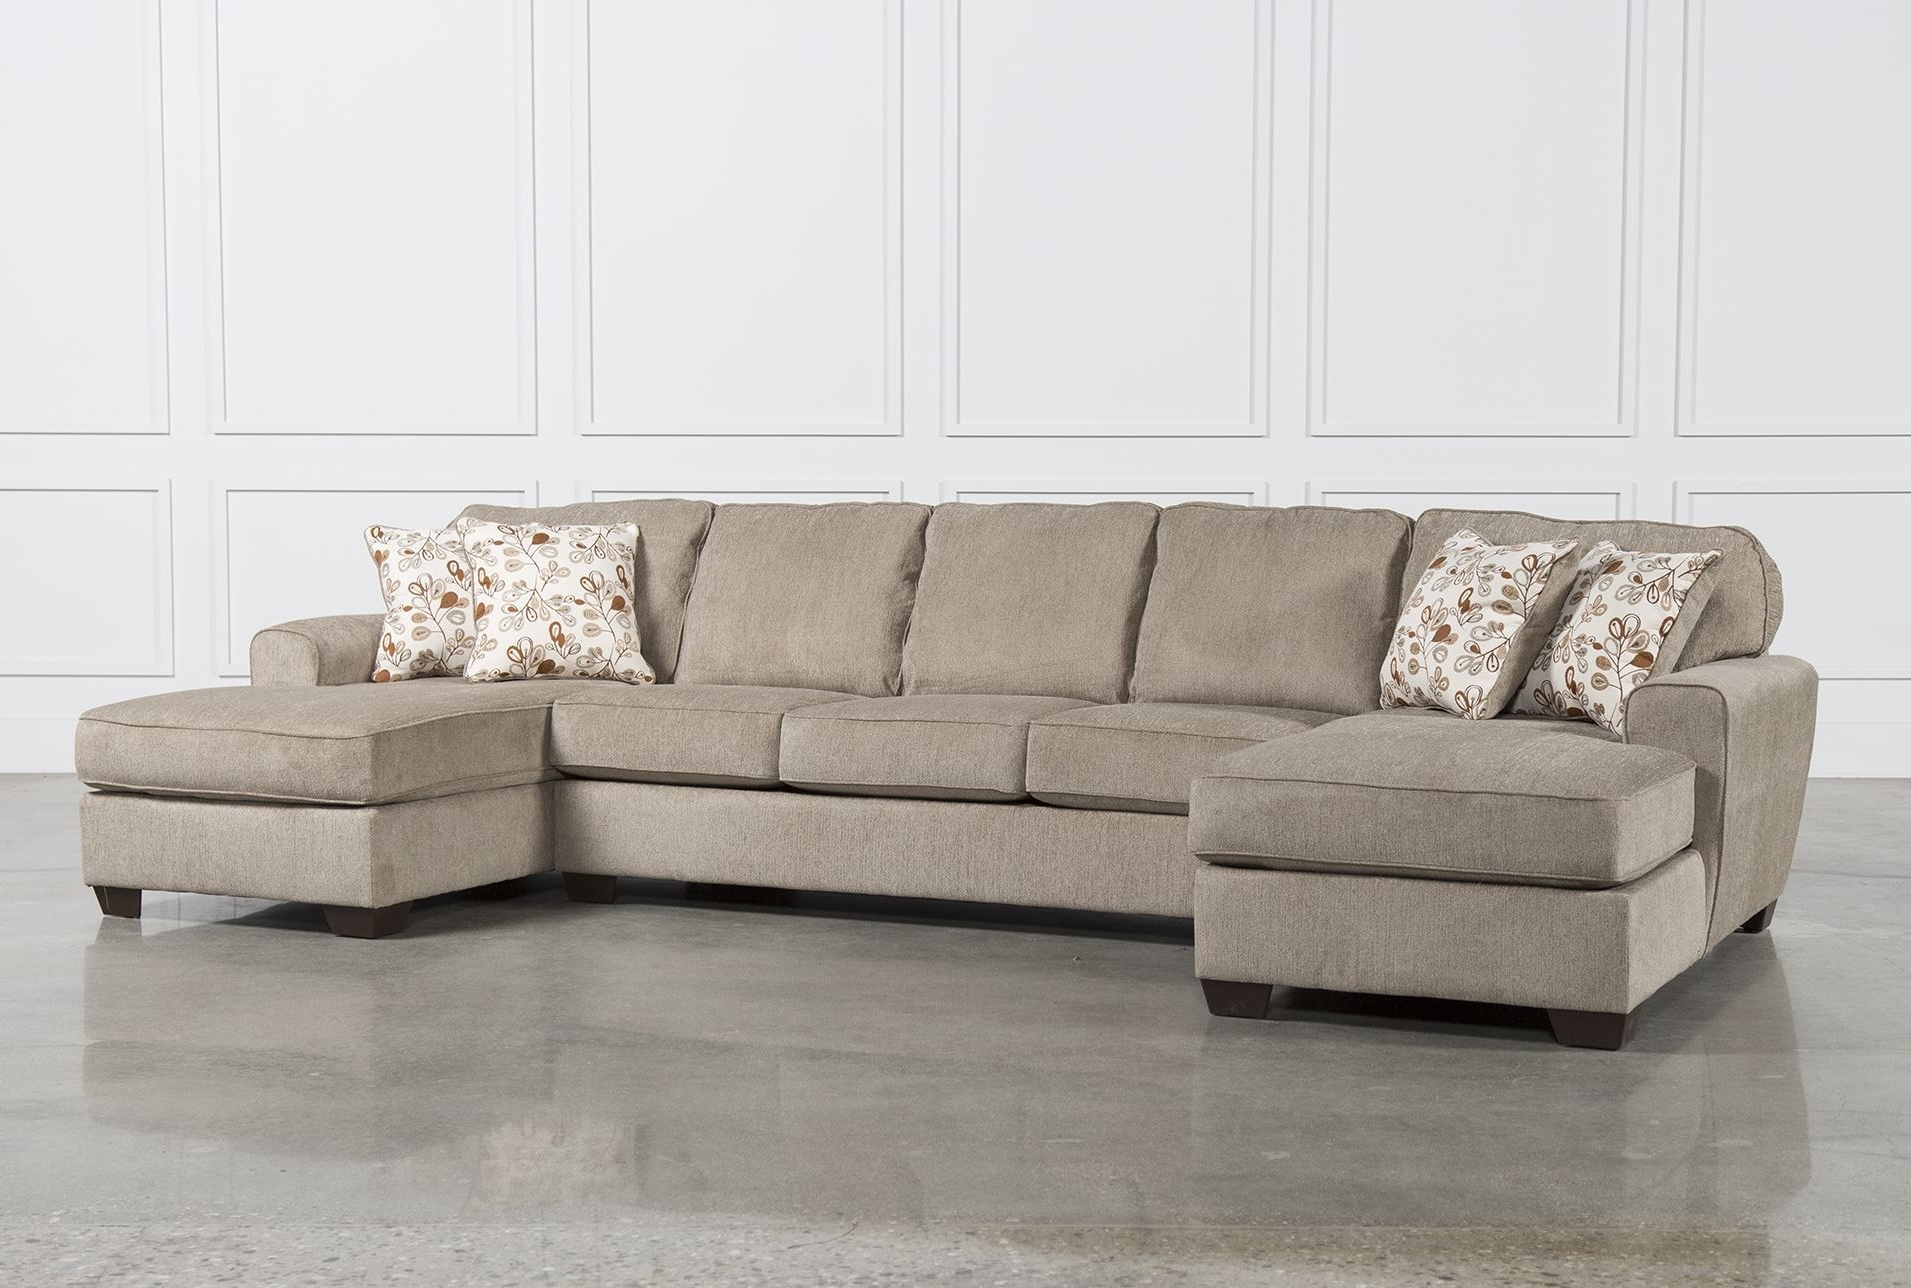 Dual Chaise Sectionals With Regard To Fashionable Popular Sectional Sofa With 2 Chaises 26 For Sectional Sofas (View 7 of 15)